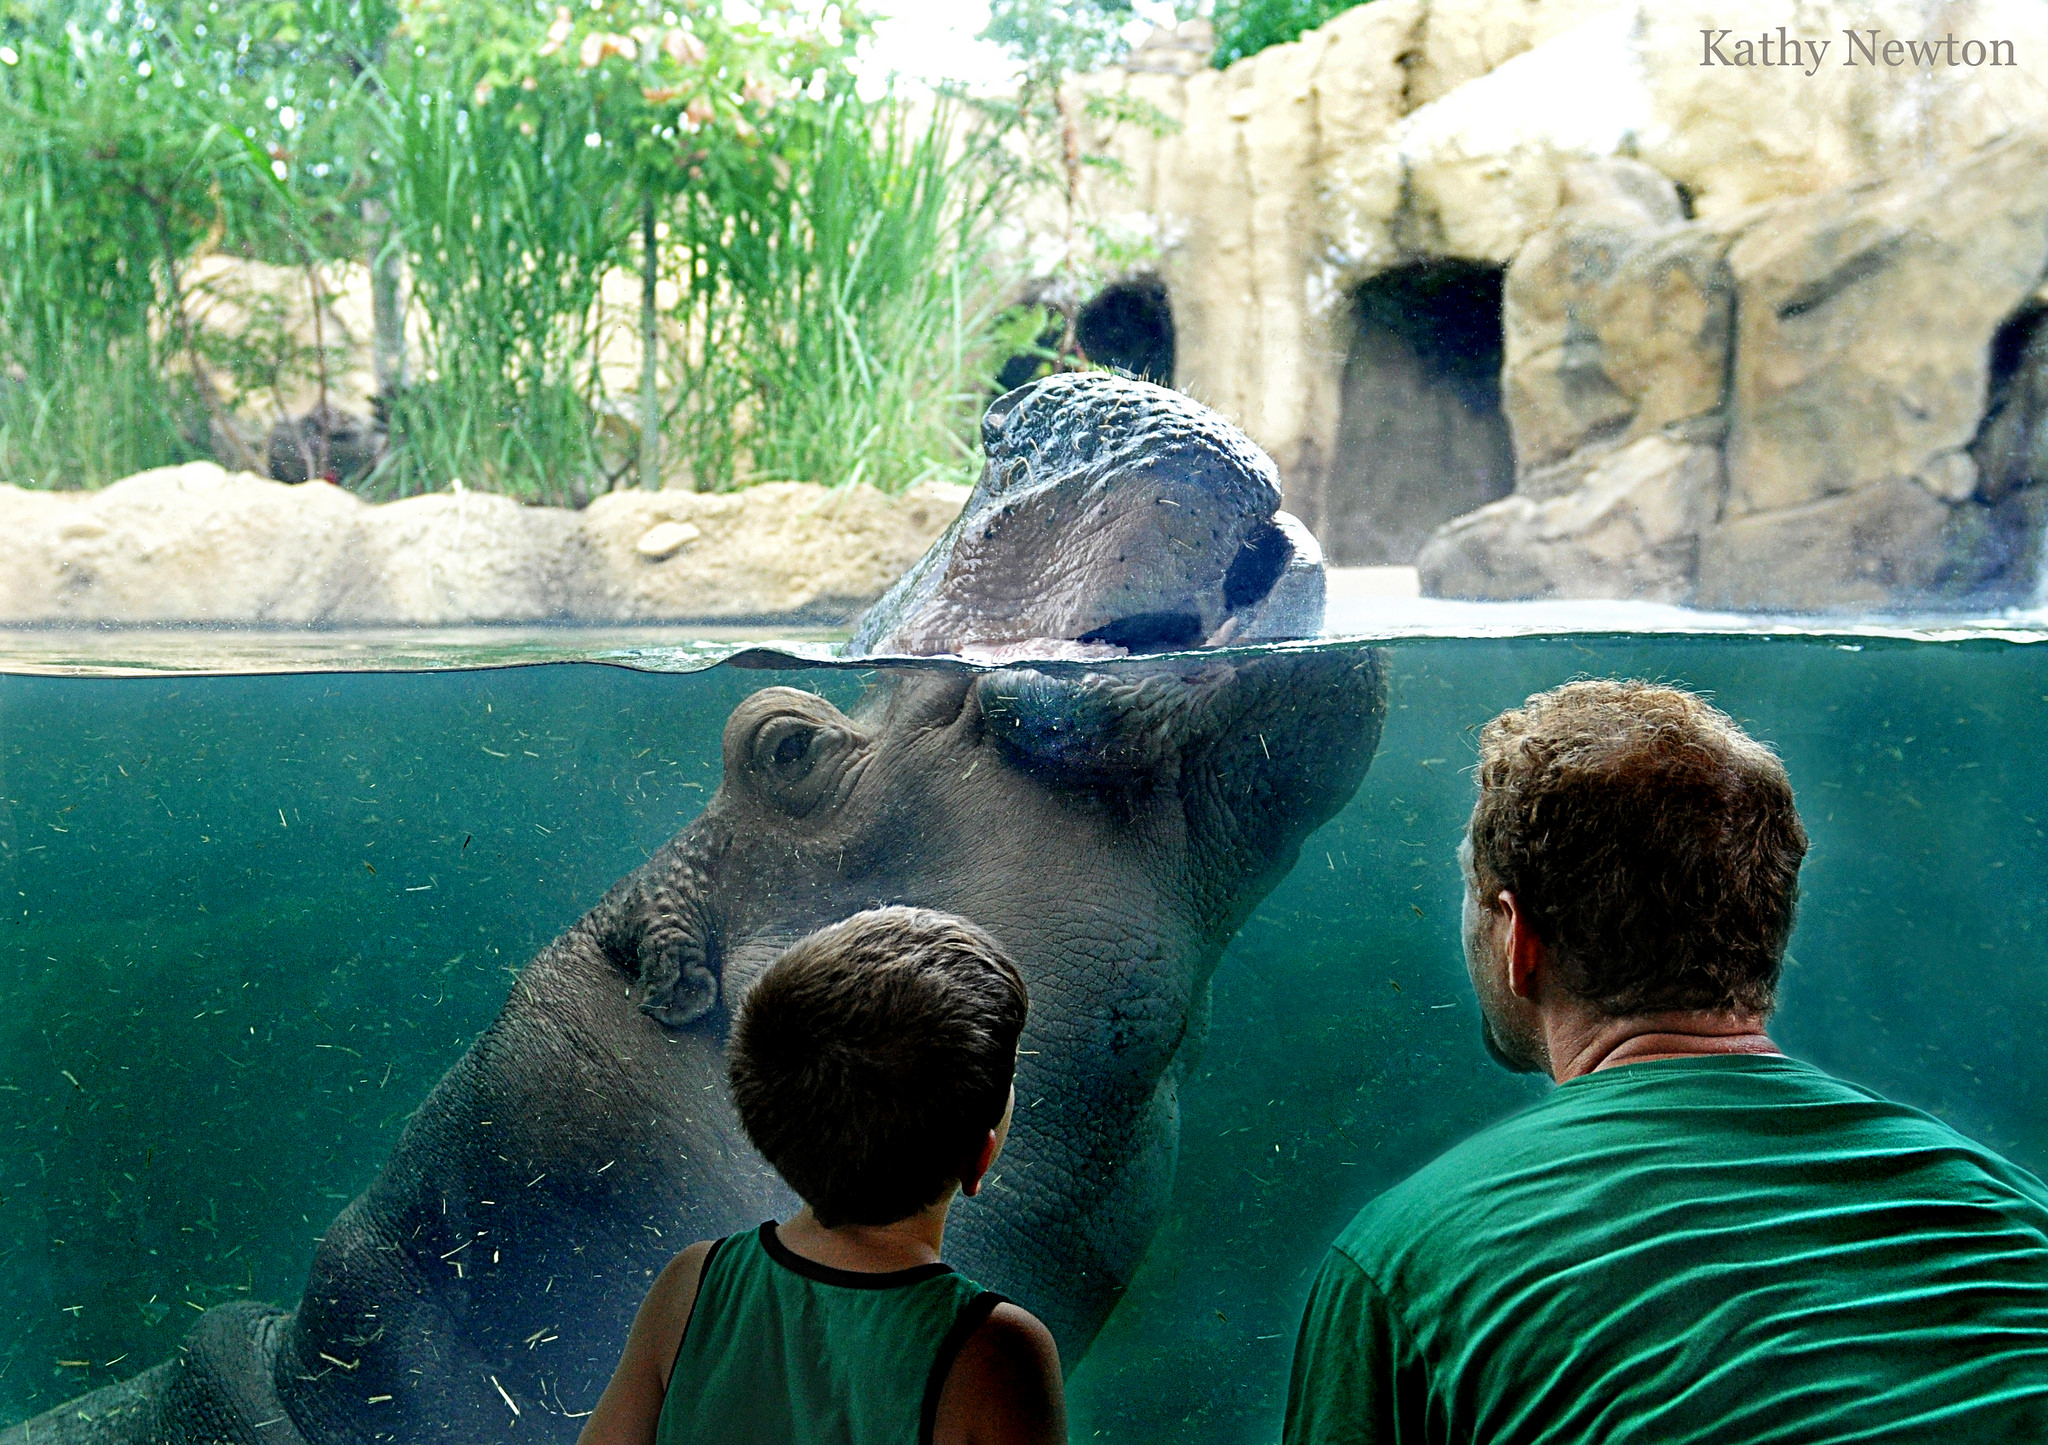 Hear the gibbons talking to each other, the splash of waves as Fiona the hippo swims over to say hi, and the chug-a-lug of the Safari Train at  Cincinnati Zoo & Botanical Garden .